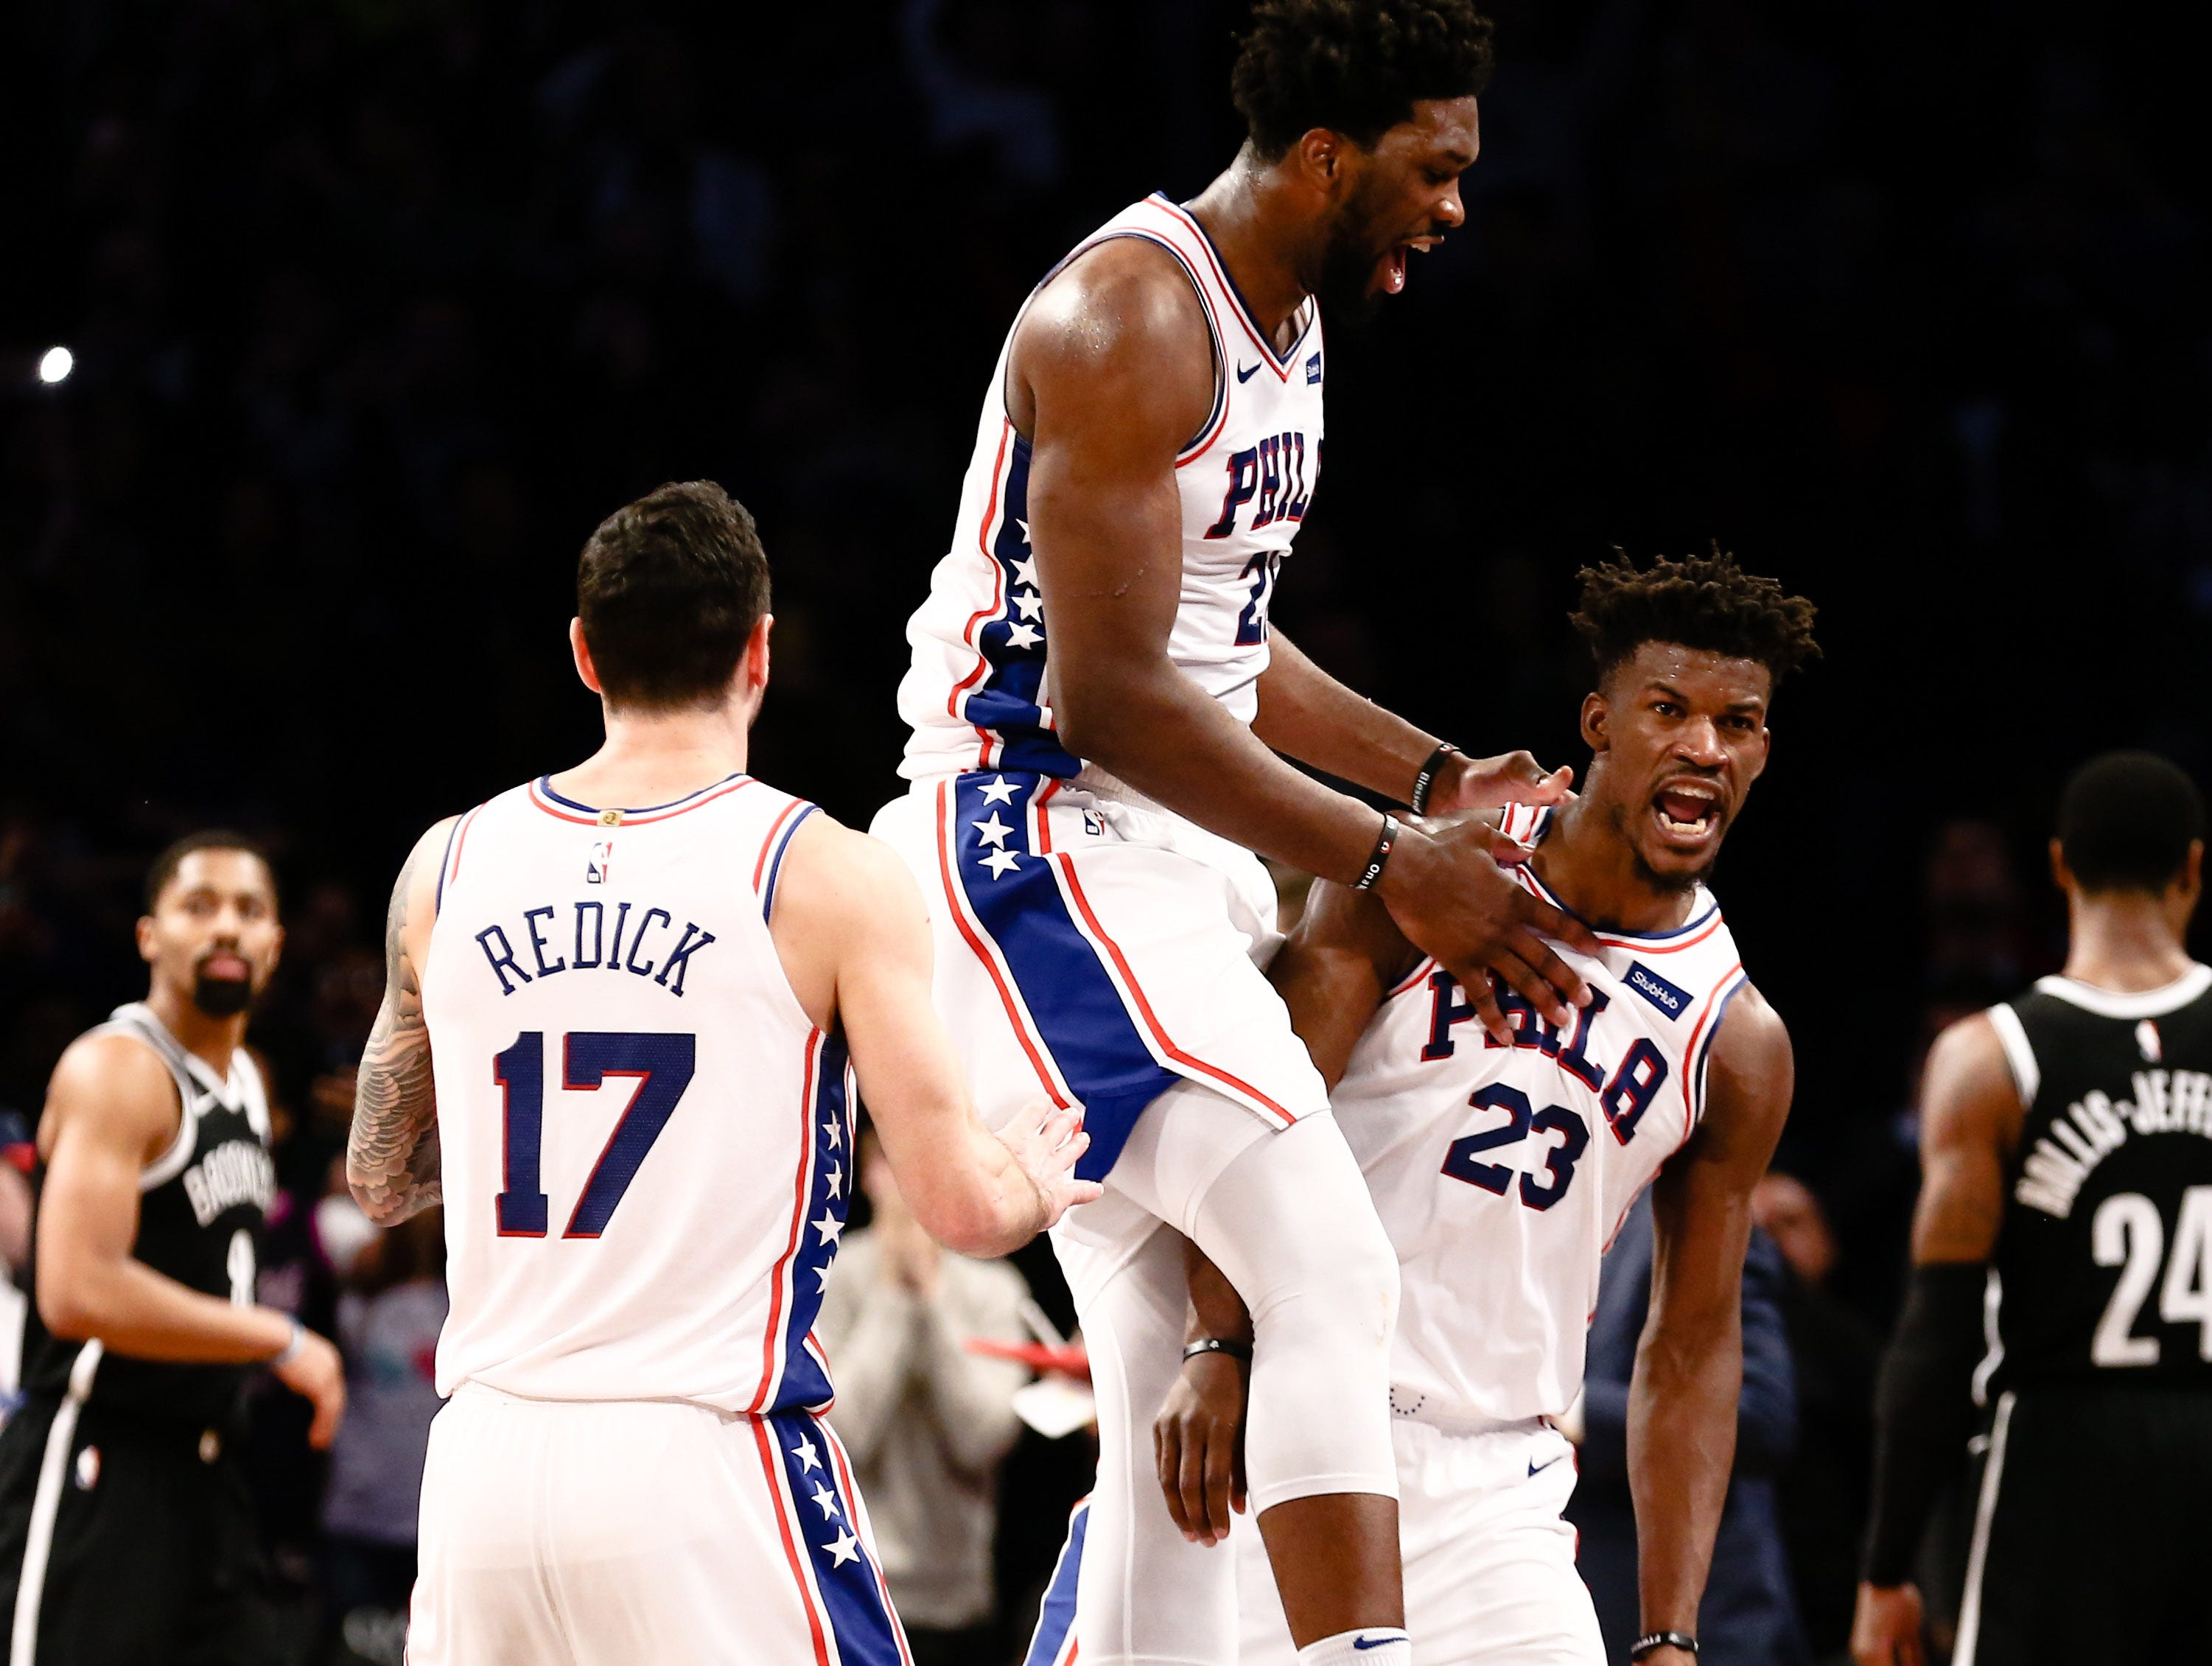 Nov. 25: Philadelphia 76ers forward Jimmy Butler celebrates after his game-winning 3-pointer against the Brooklyn Nets at Barclays Center.